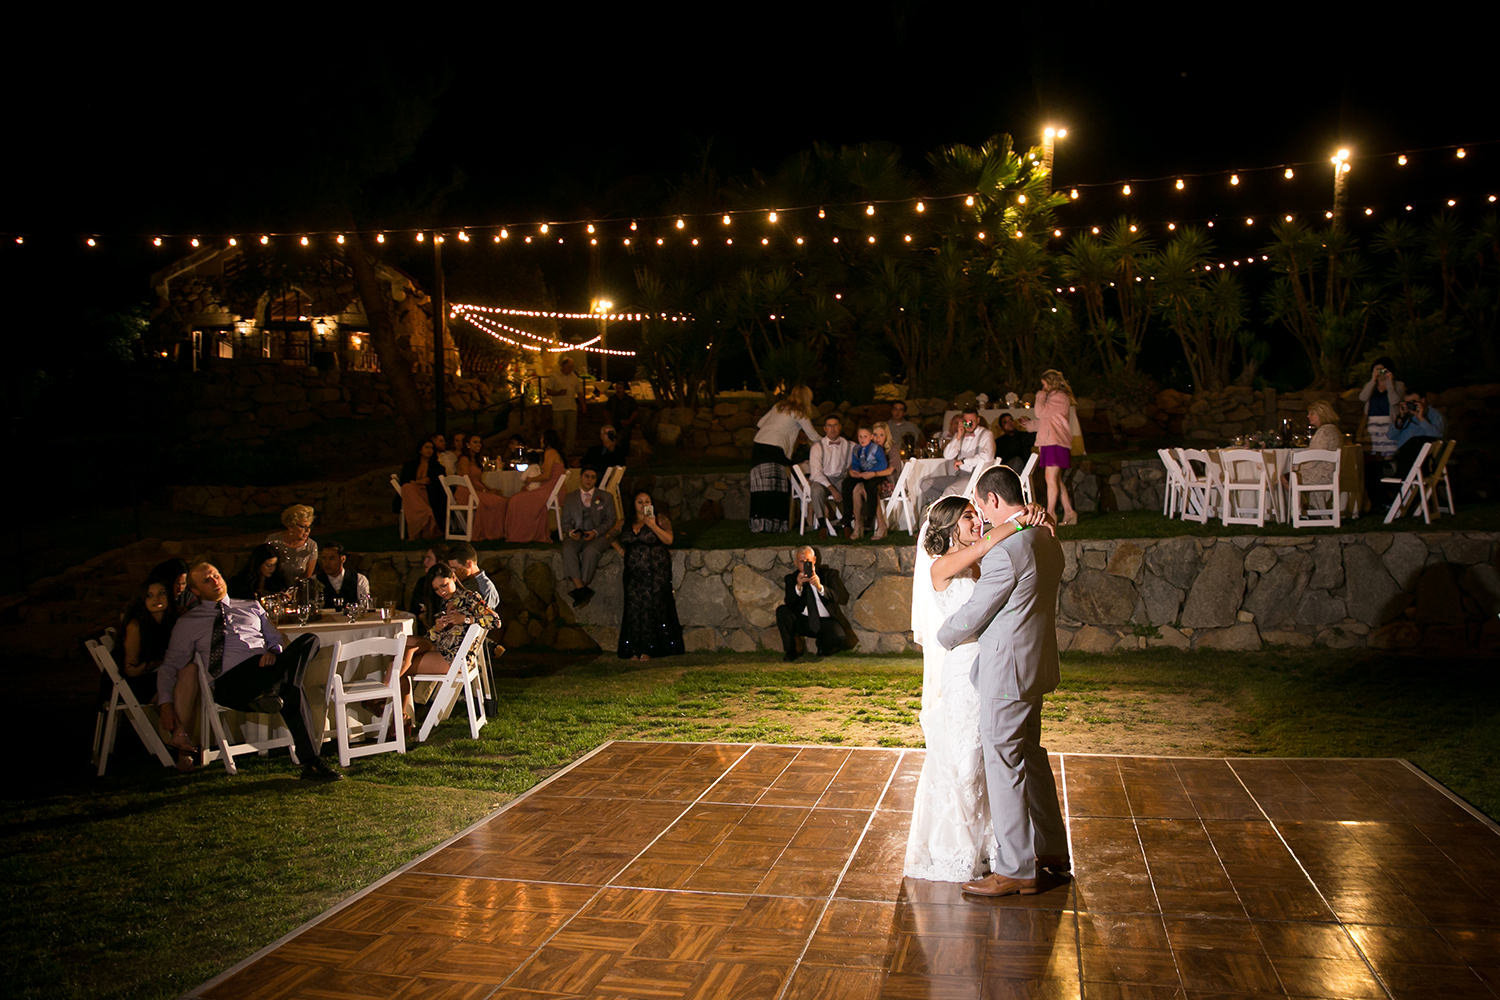 nightime reception image bride and groom dancing